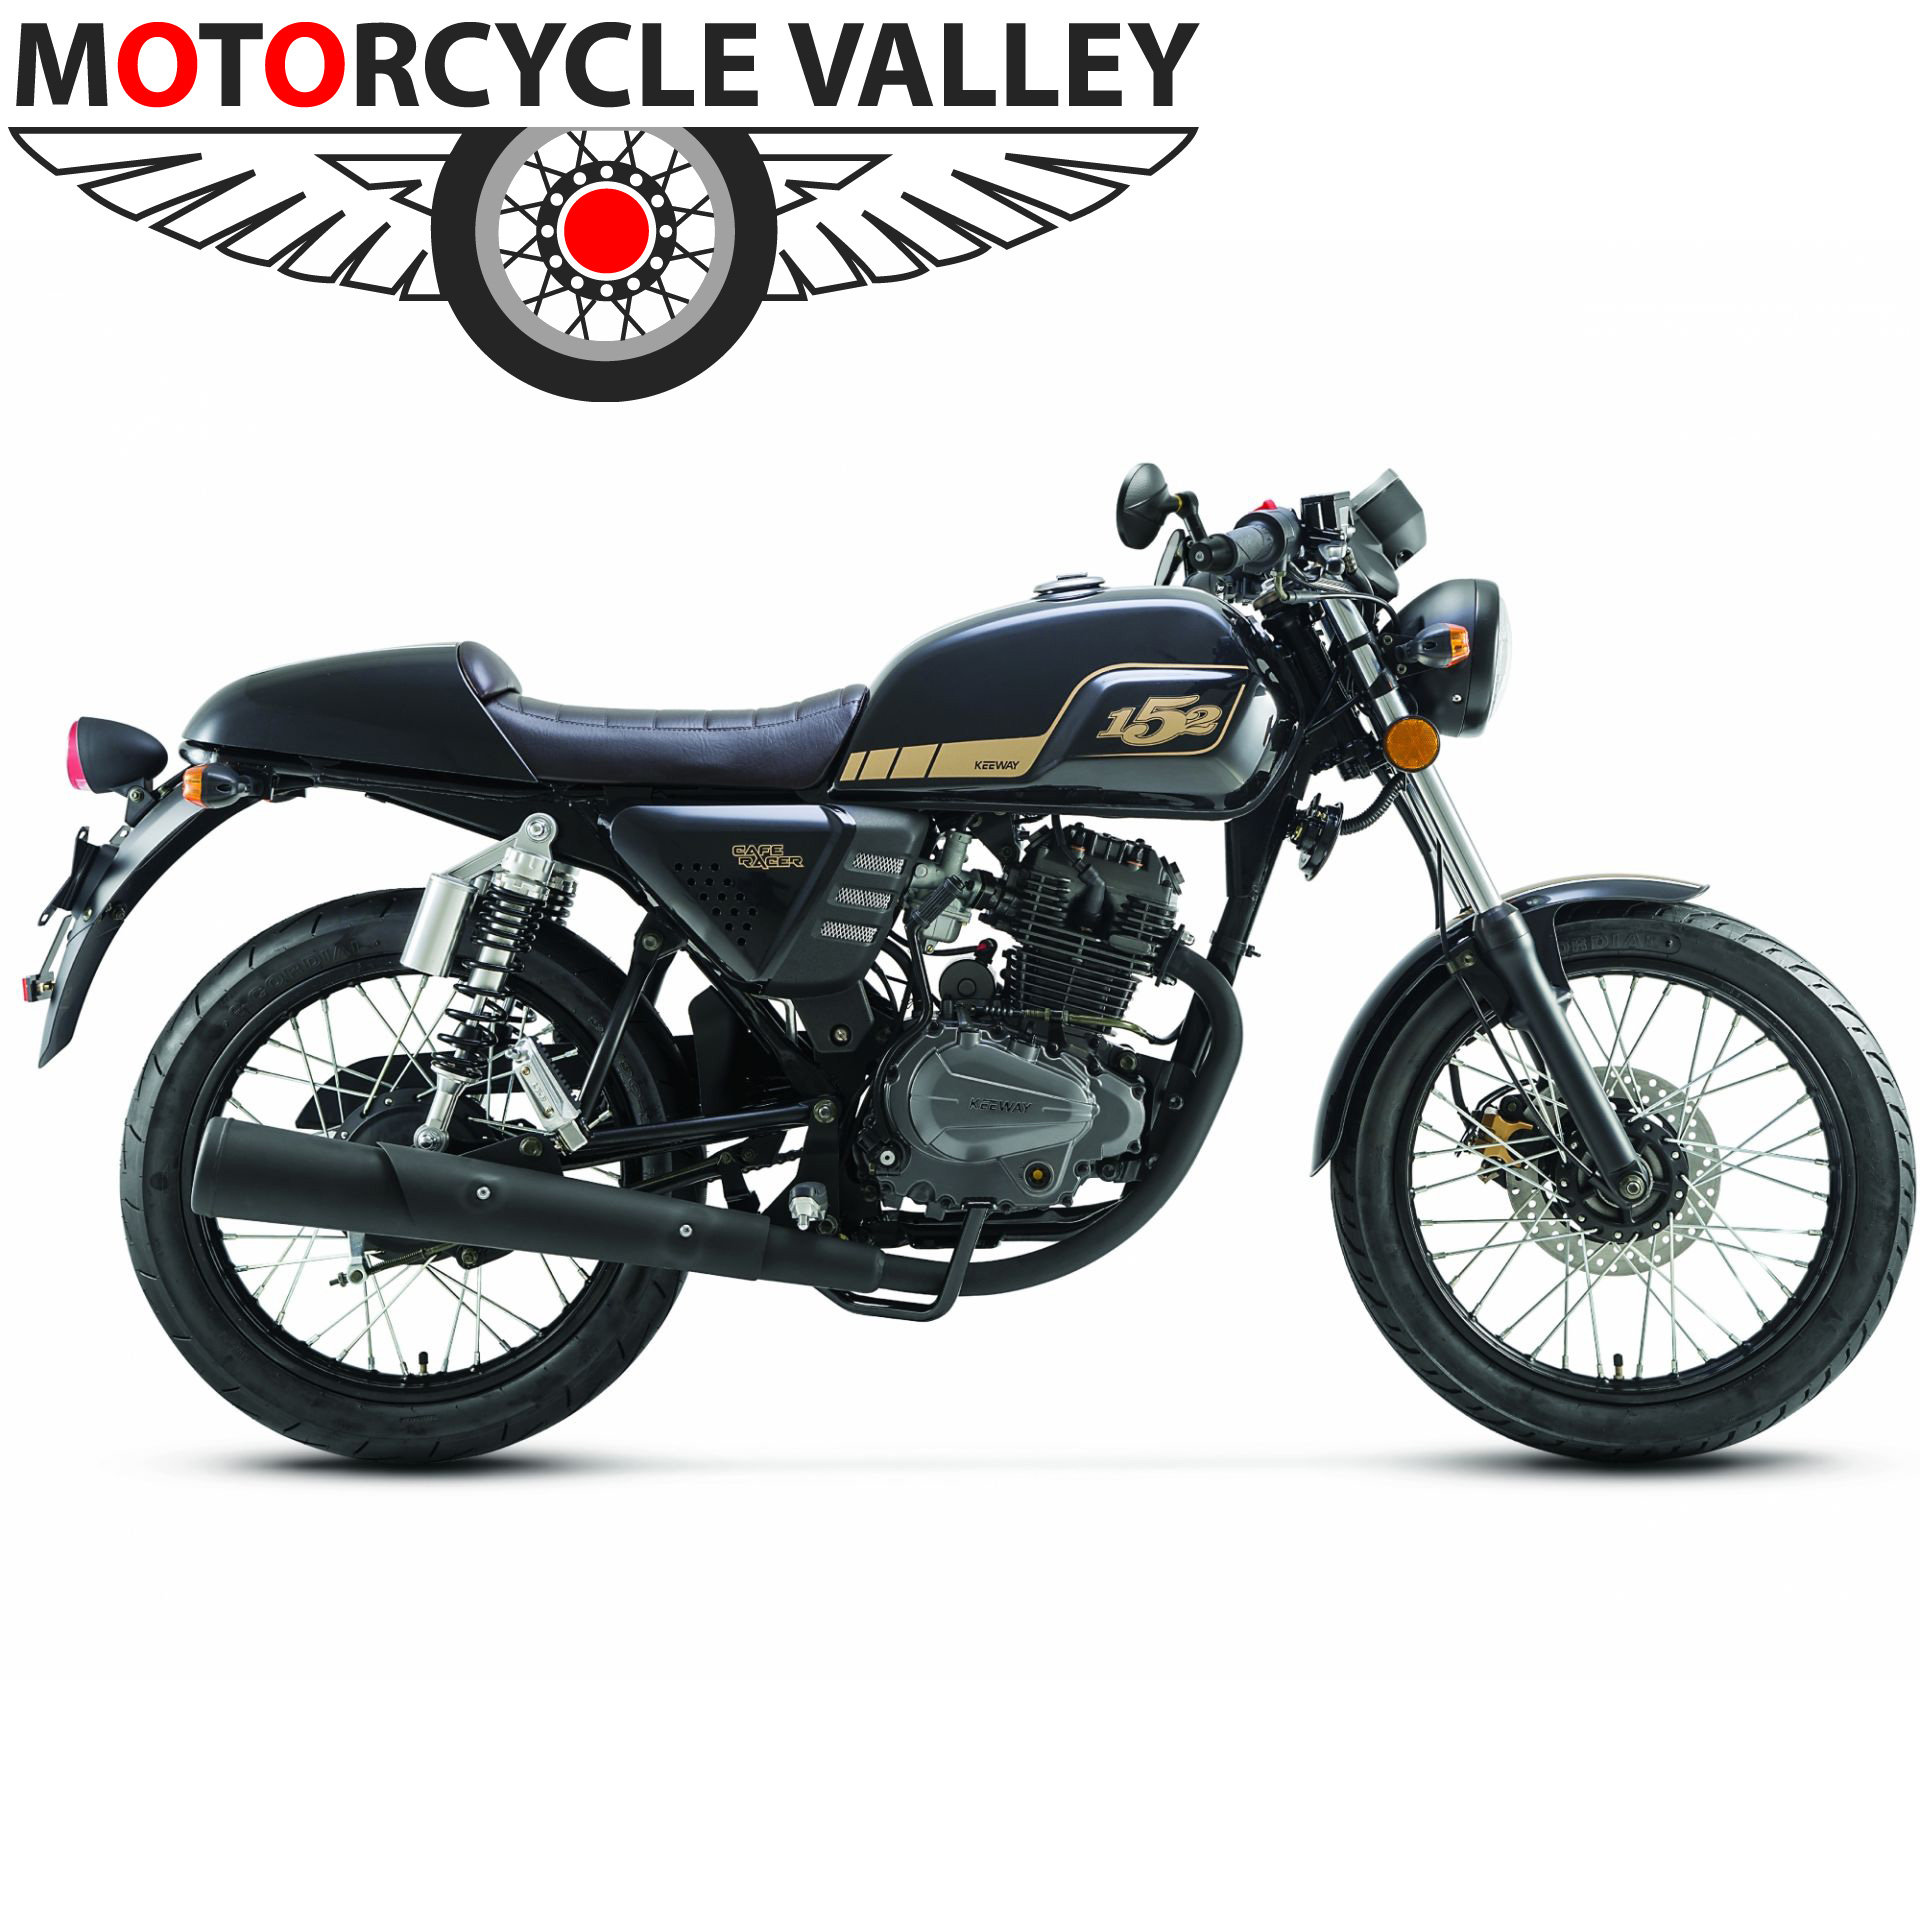 Cafe Racer Motorcycle Philippines